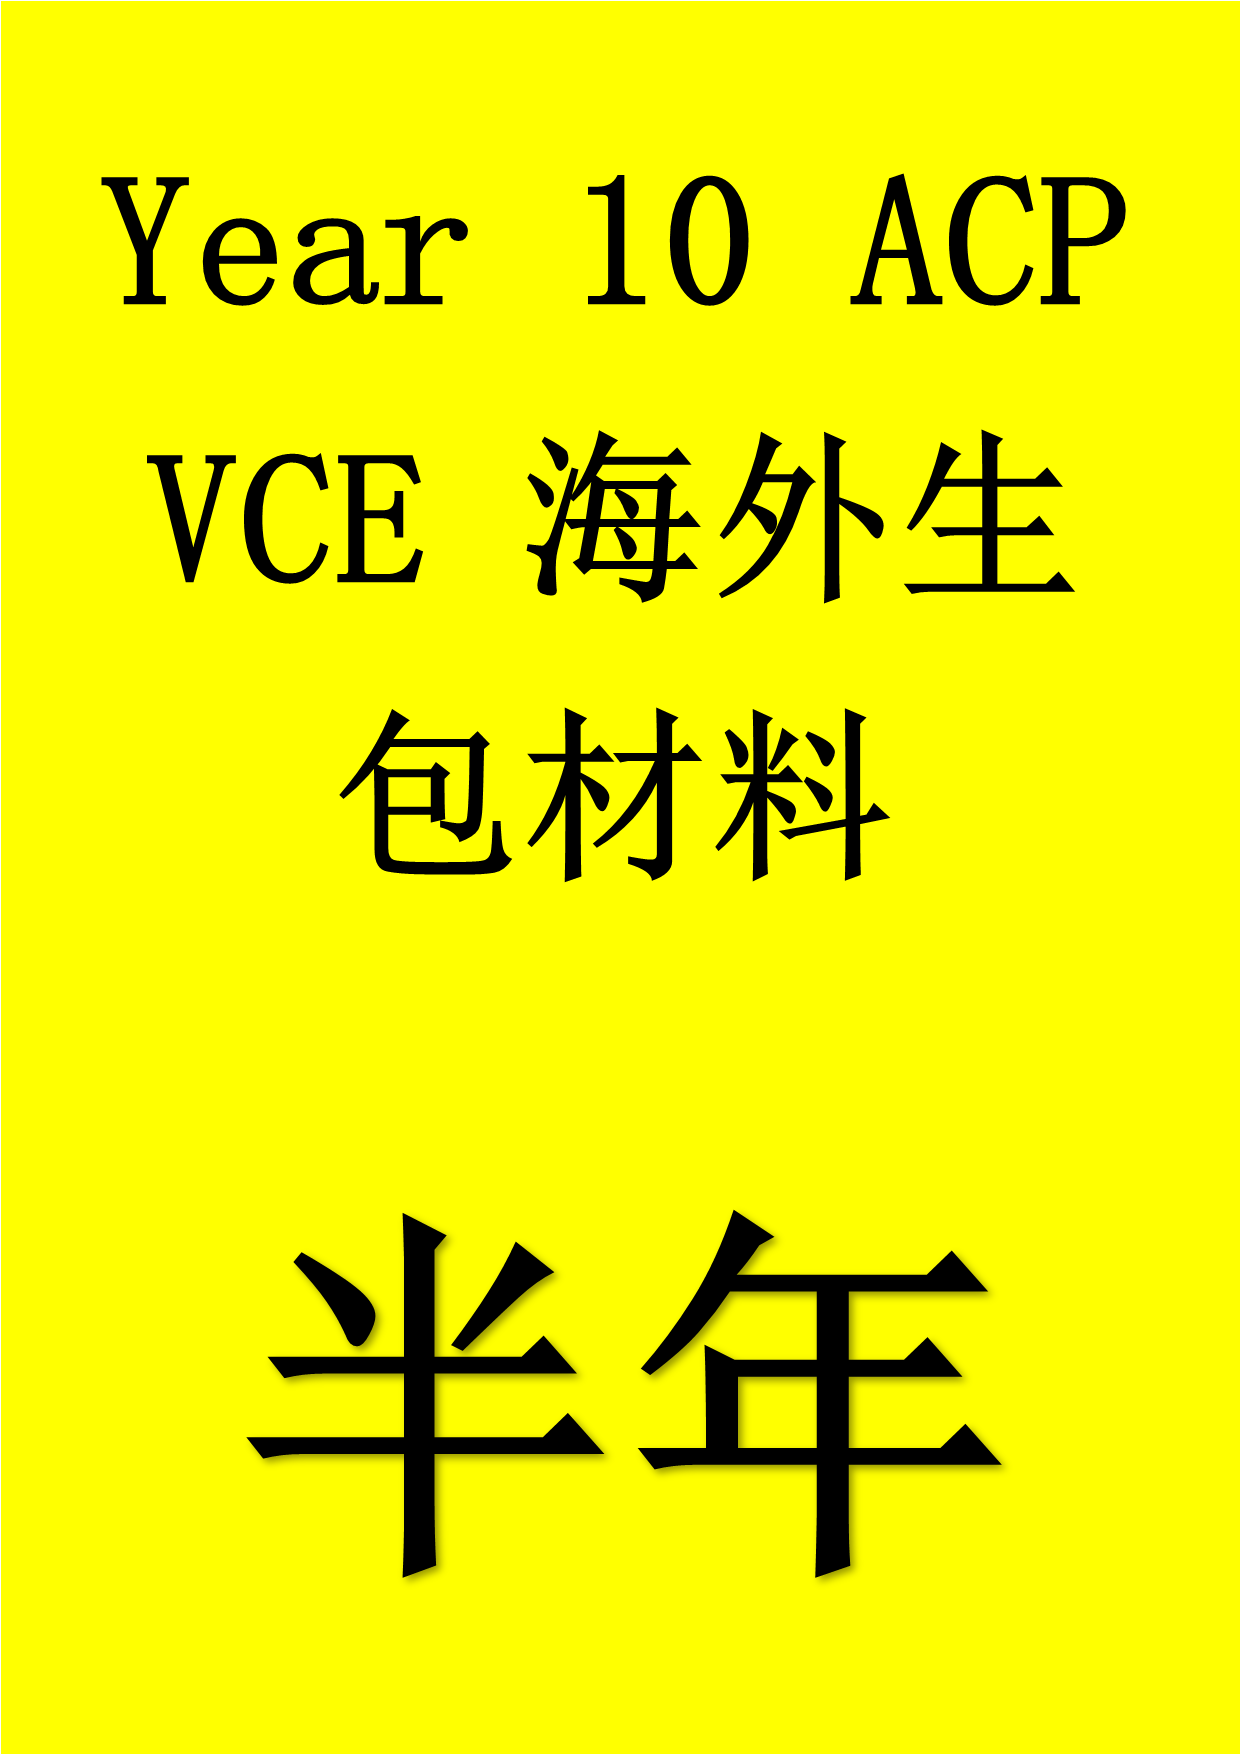 VCE Chinese Year 10 ACP Oversea Student Half year